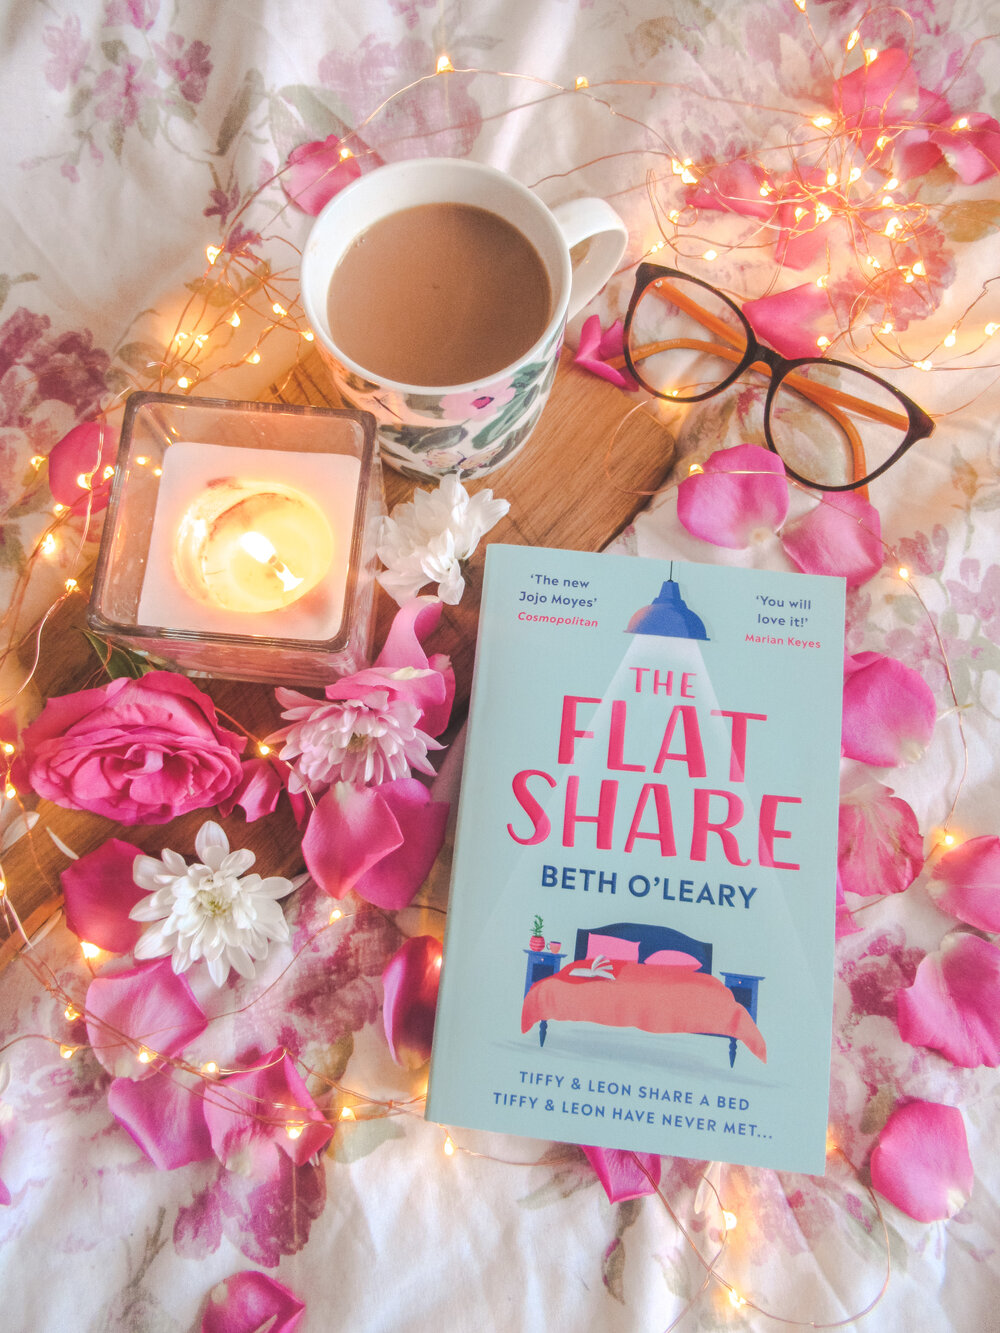 The Flat Share - A review